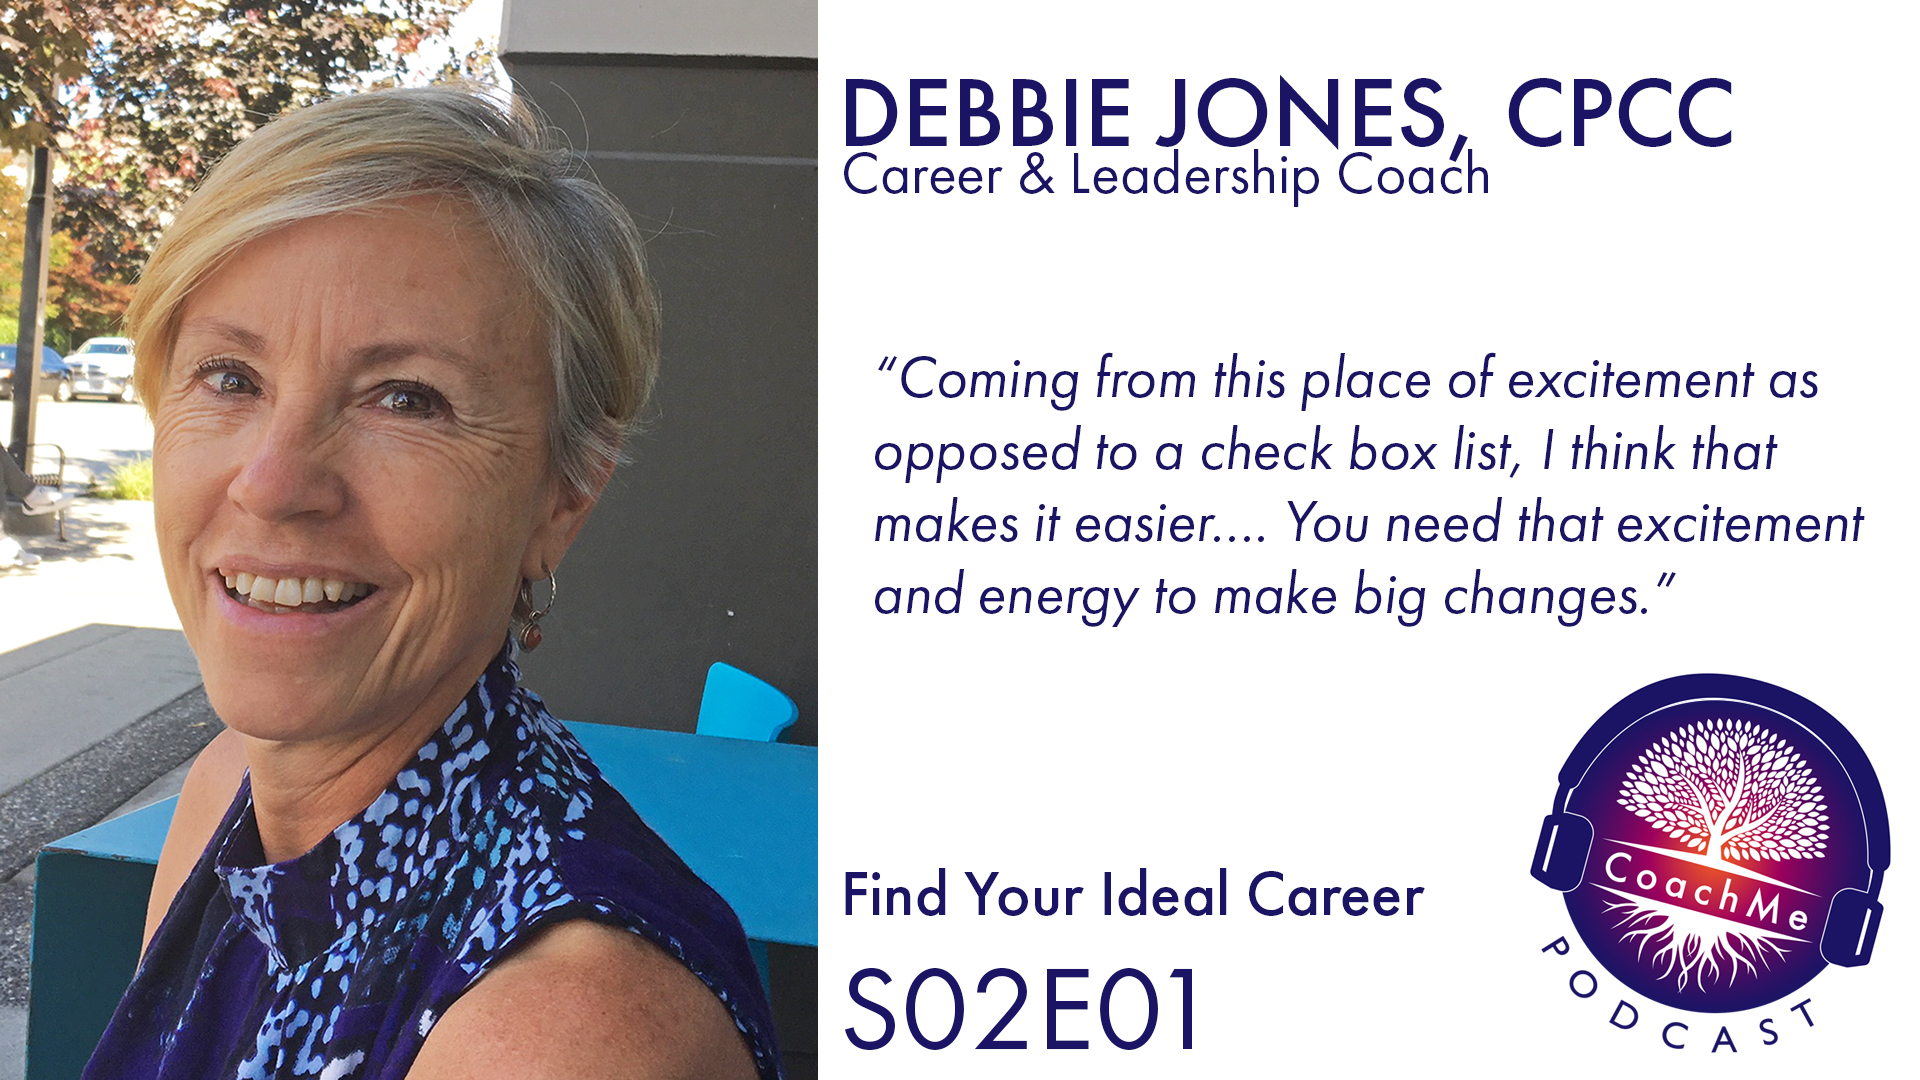 Find Your Ideal Career with Debbie Jones - Career and Leadership Coach - S02 E01 - CoachMe Vancouver Podcast